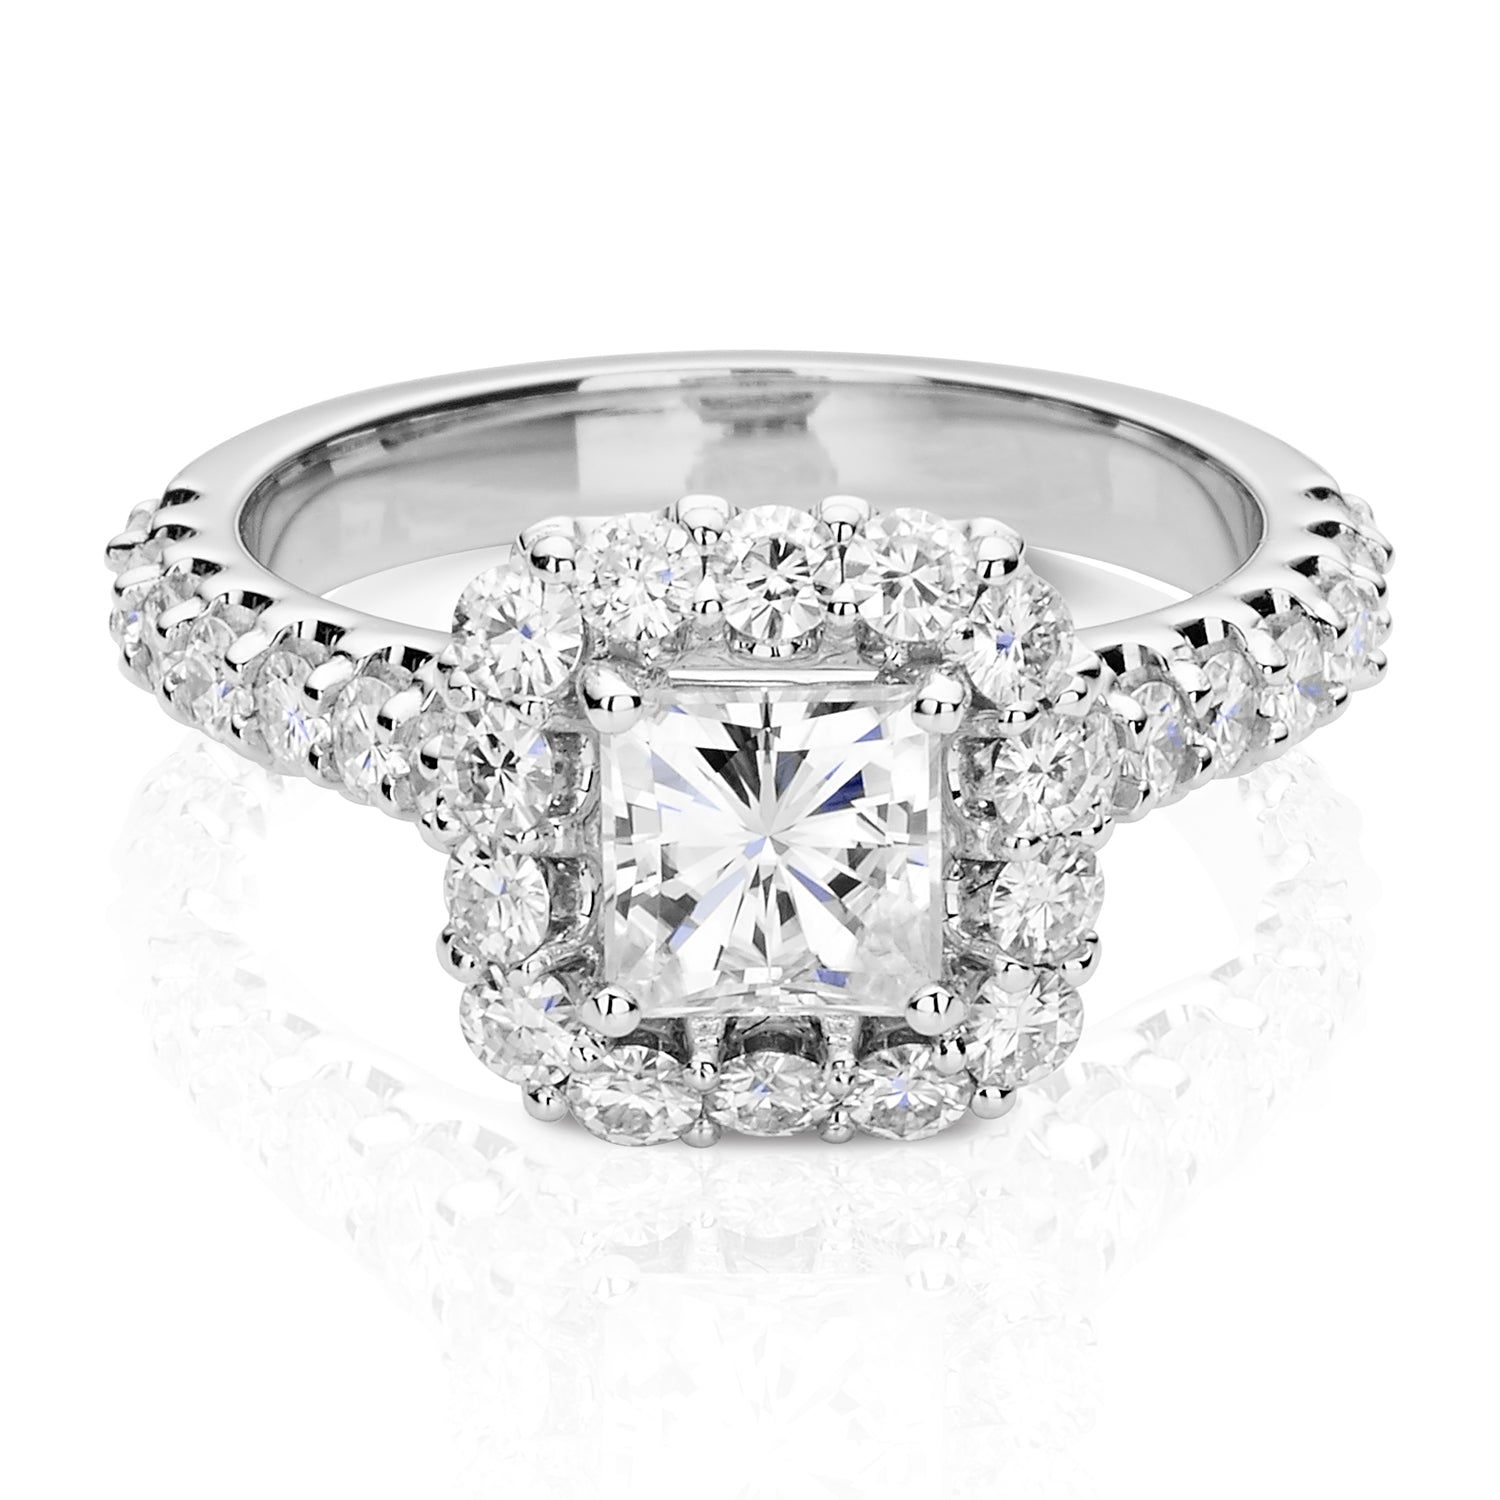 Charles & Colvard Moissanite Square Halo Ring in White Gold-612942 - Jewelry by Johan